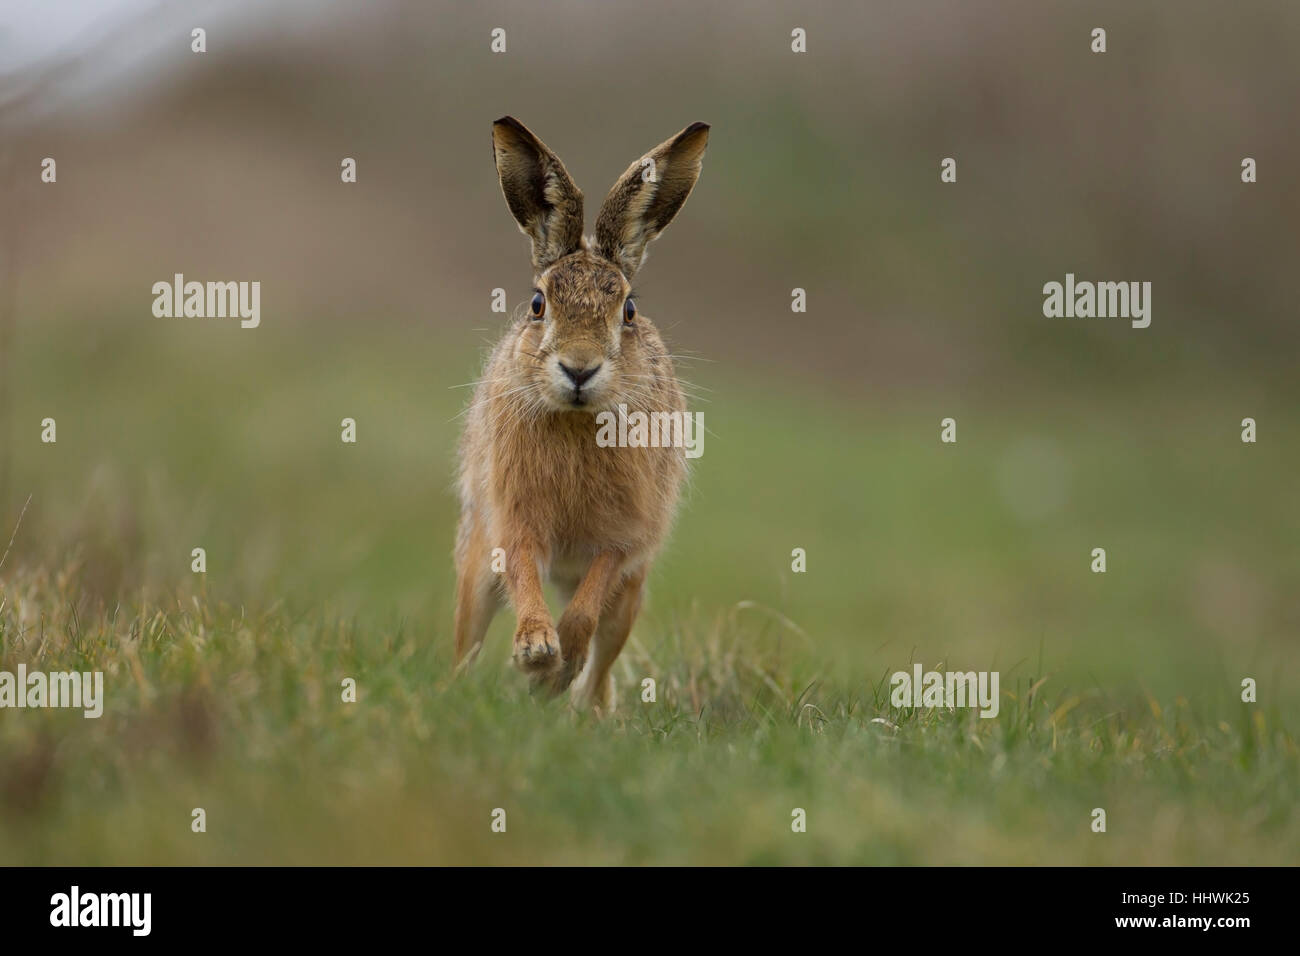 Brown hare (Lepus europaeus) running, in a field, Suffolk, England, United Kingdom - Stock Image